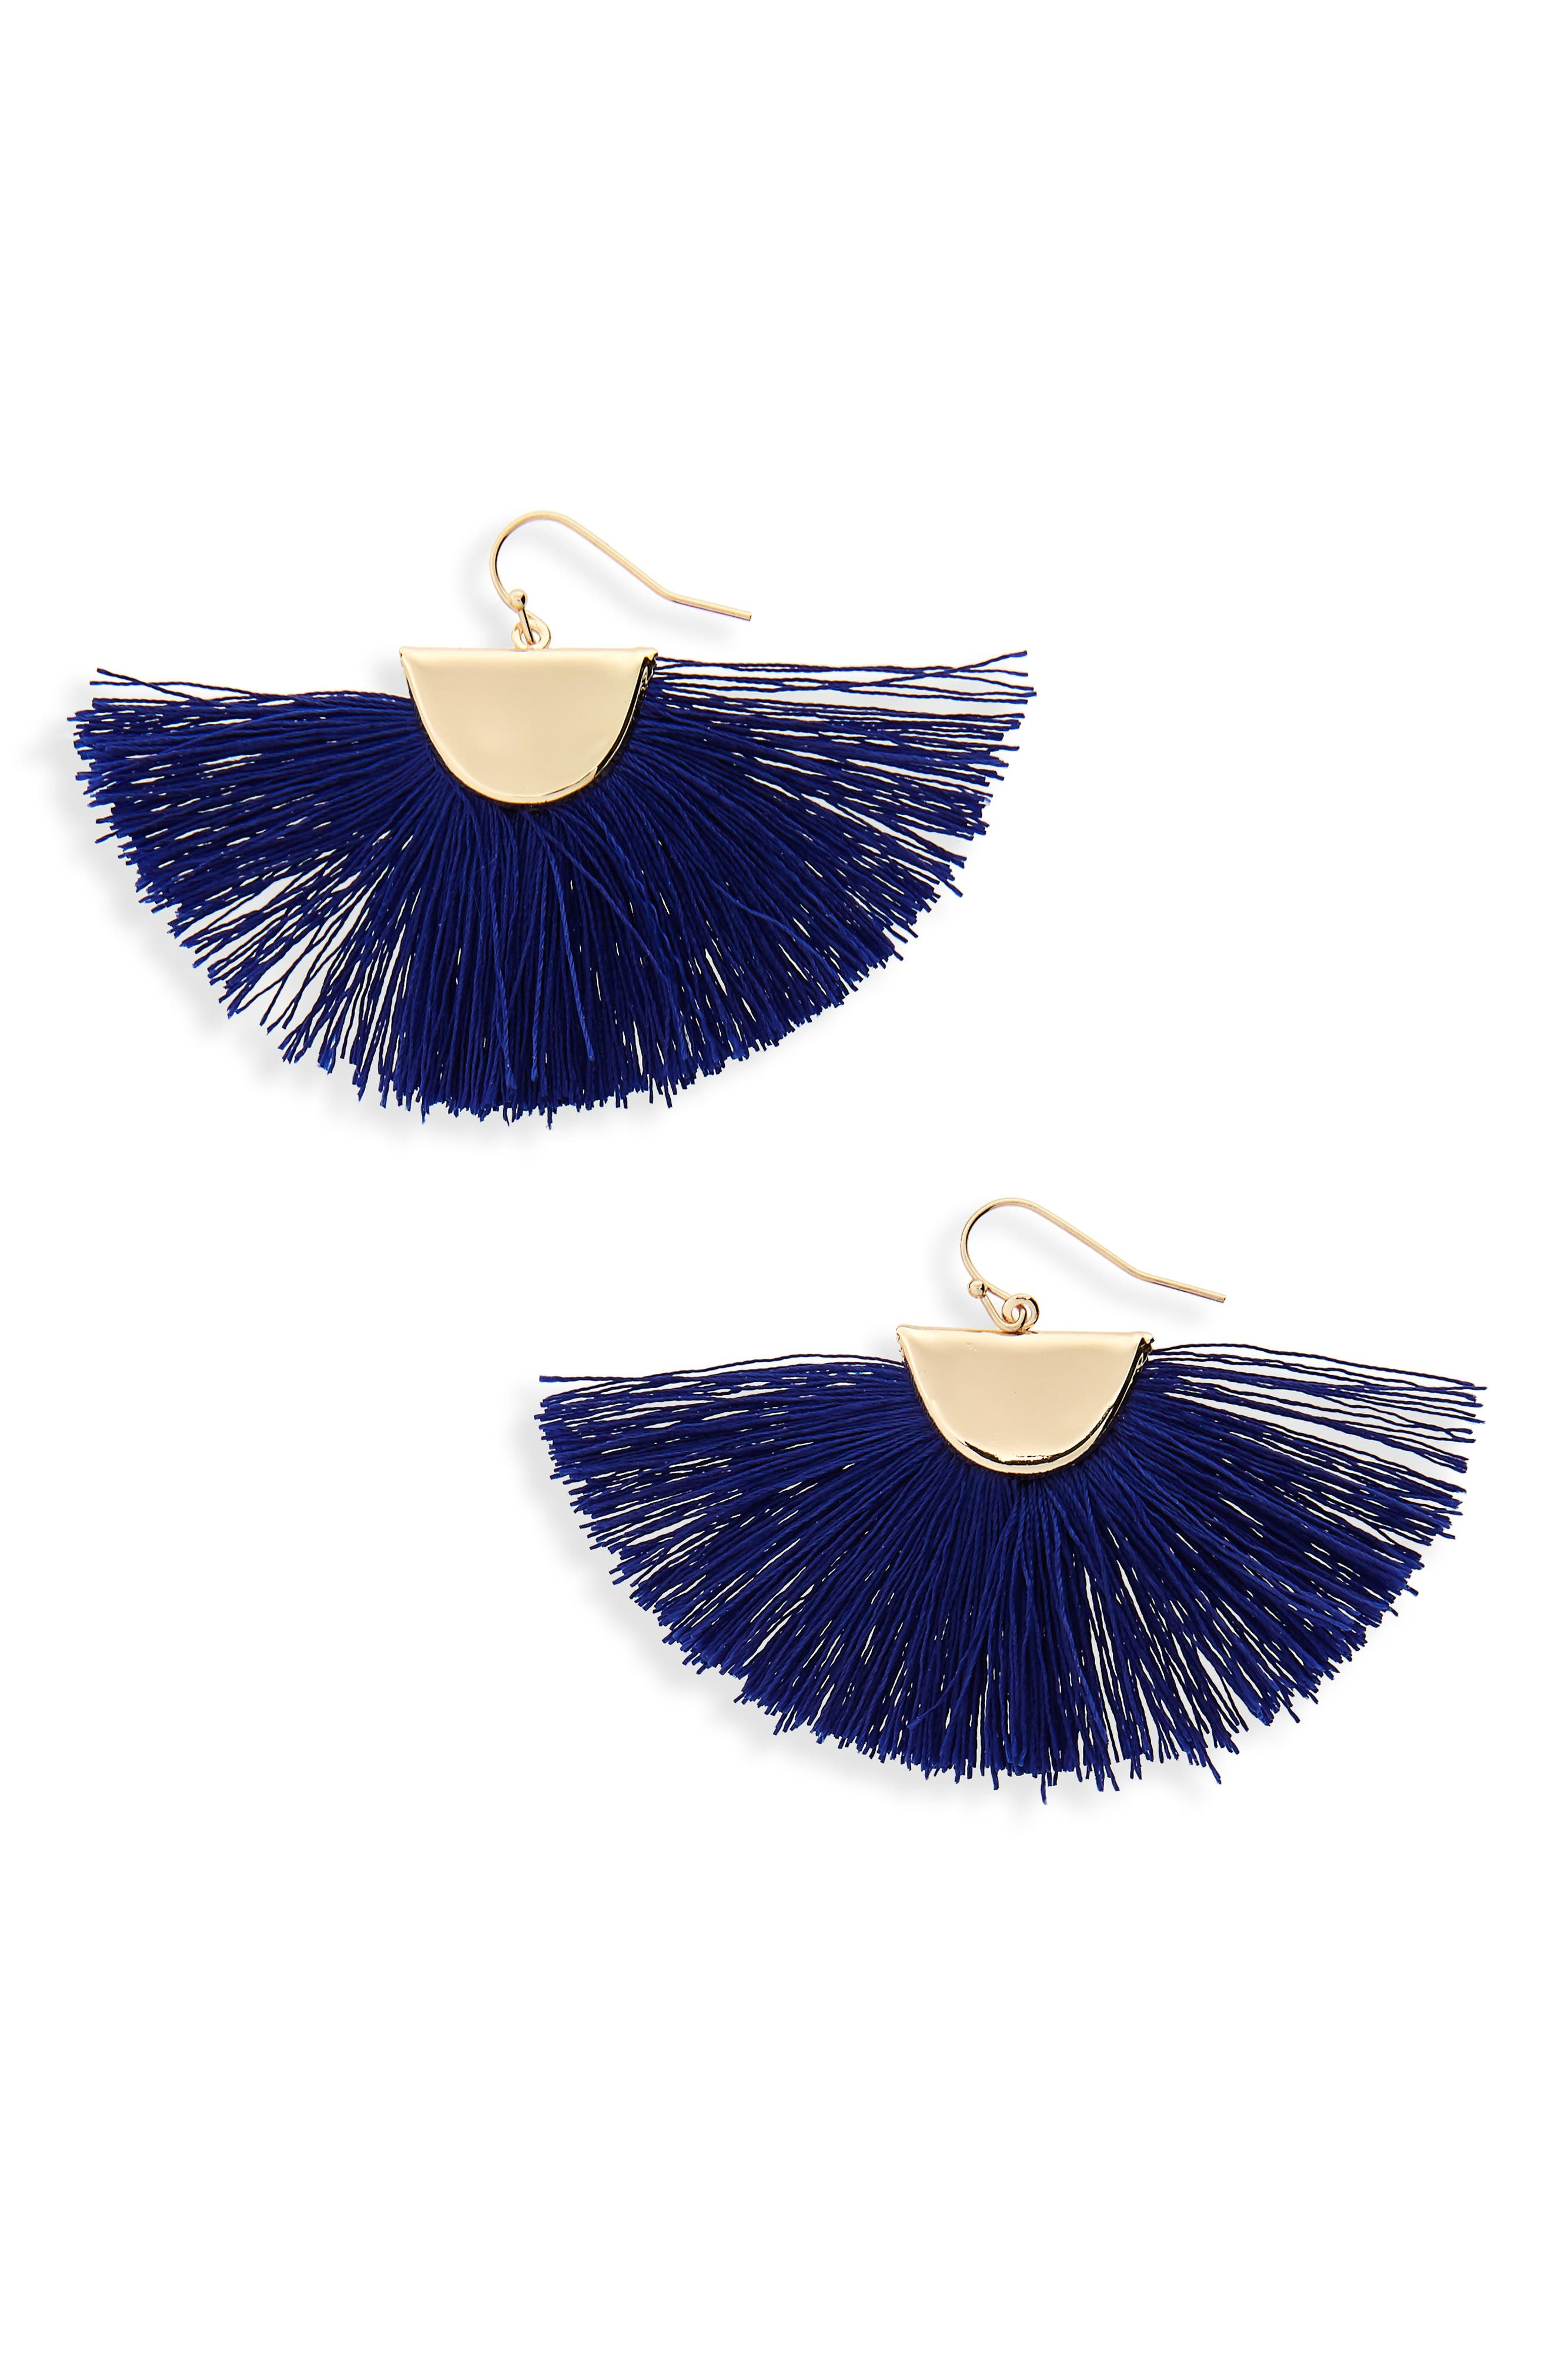 Fan Drop Earrings,                         Main,                         color,